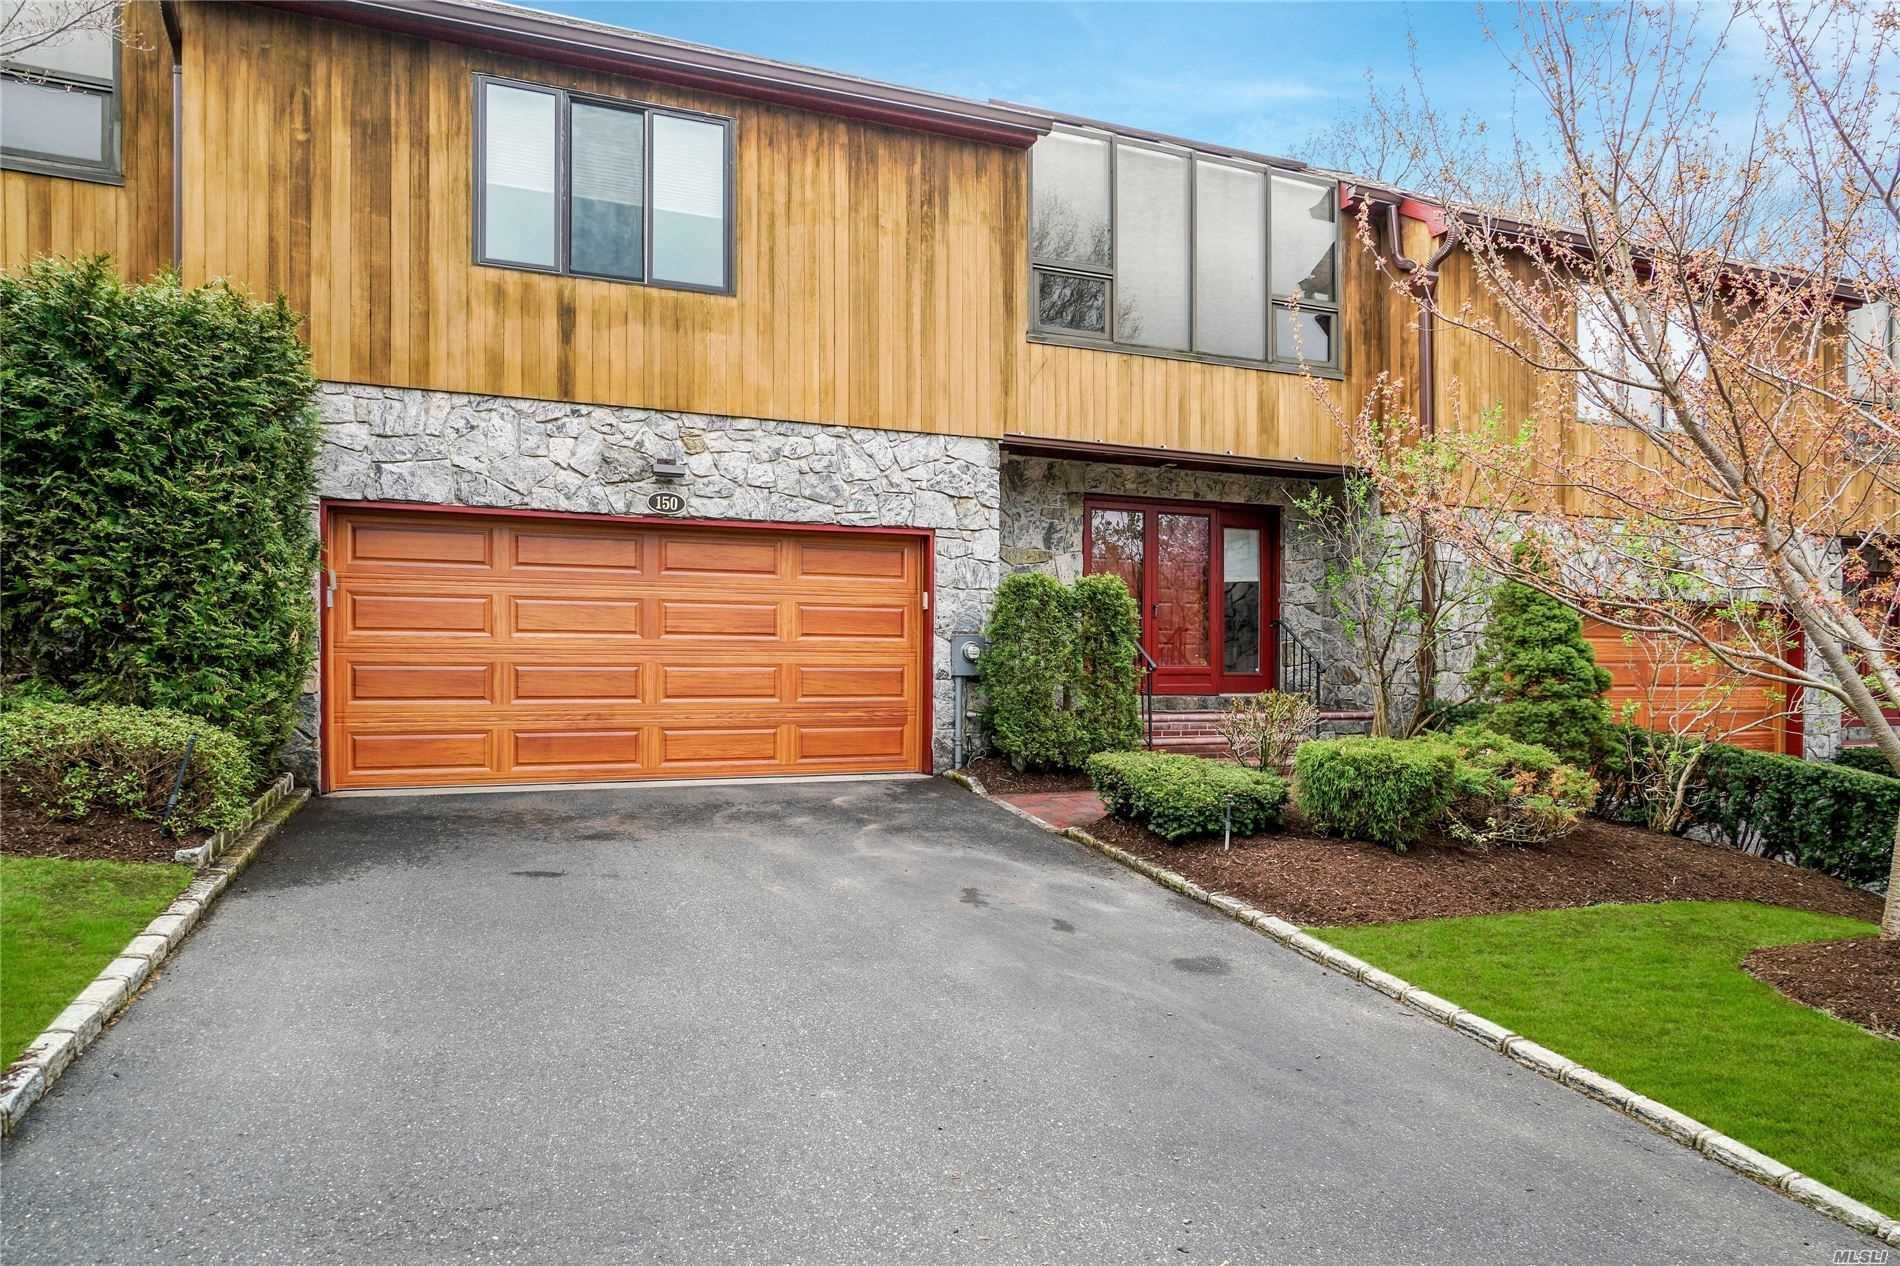 150 The Crescent, Roslyn Heights, NY 11577 - MLS#: 3188473